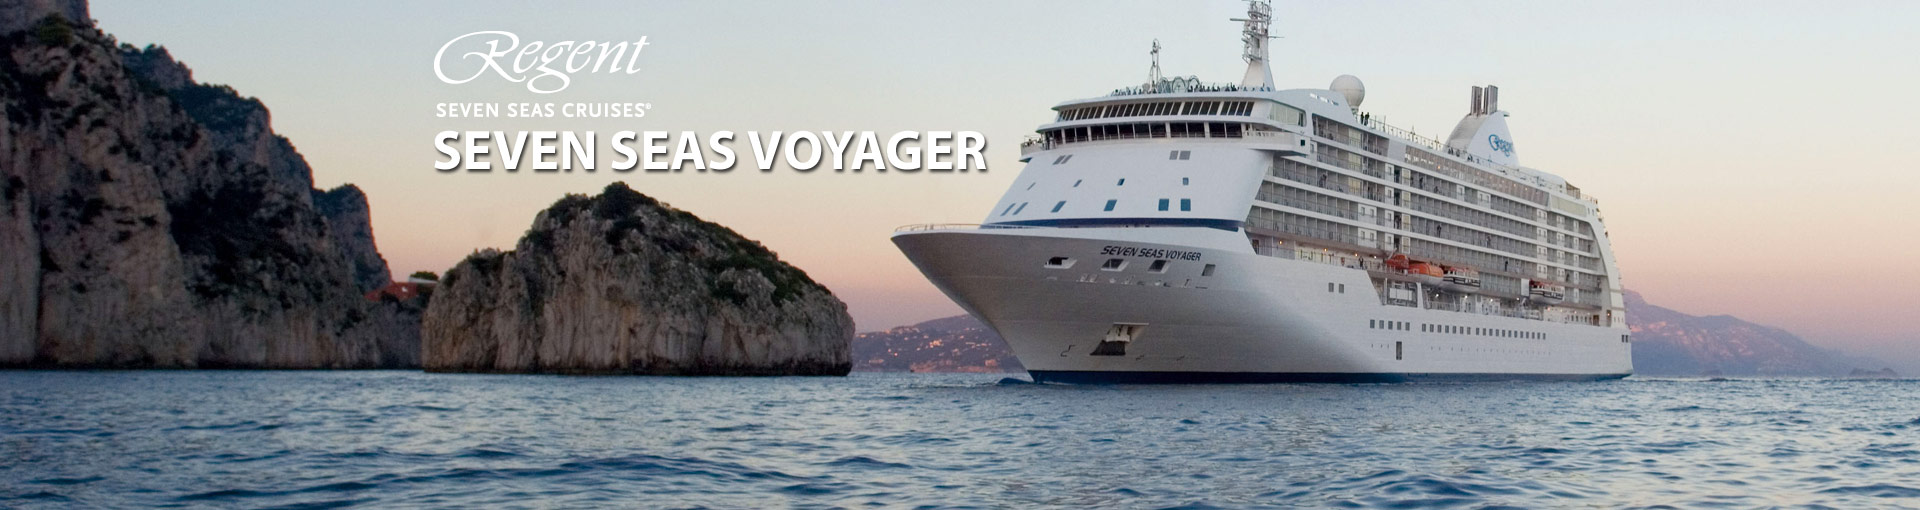 Regent Seven Seas Voyager cruise ship